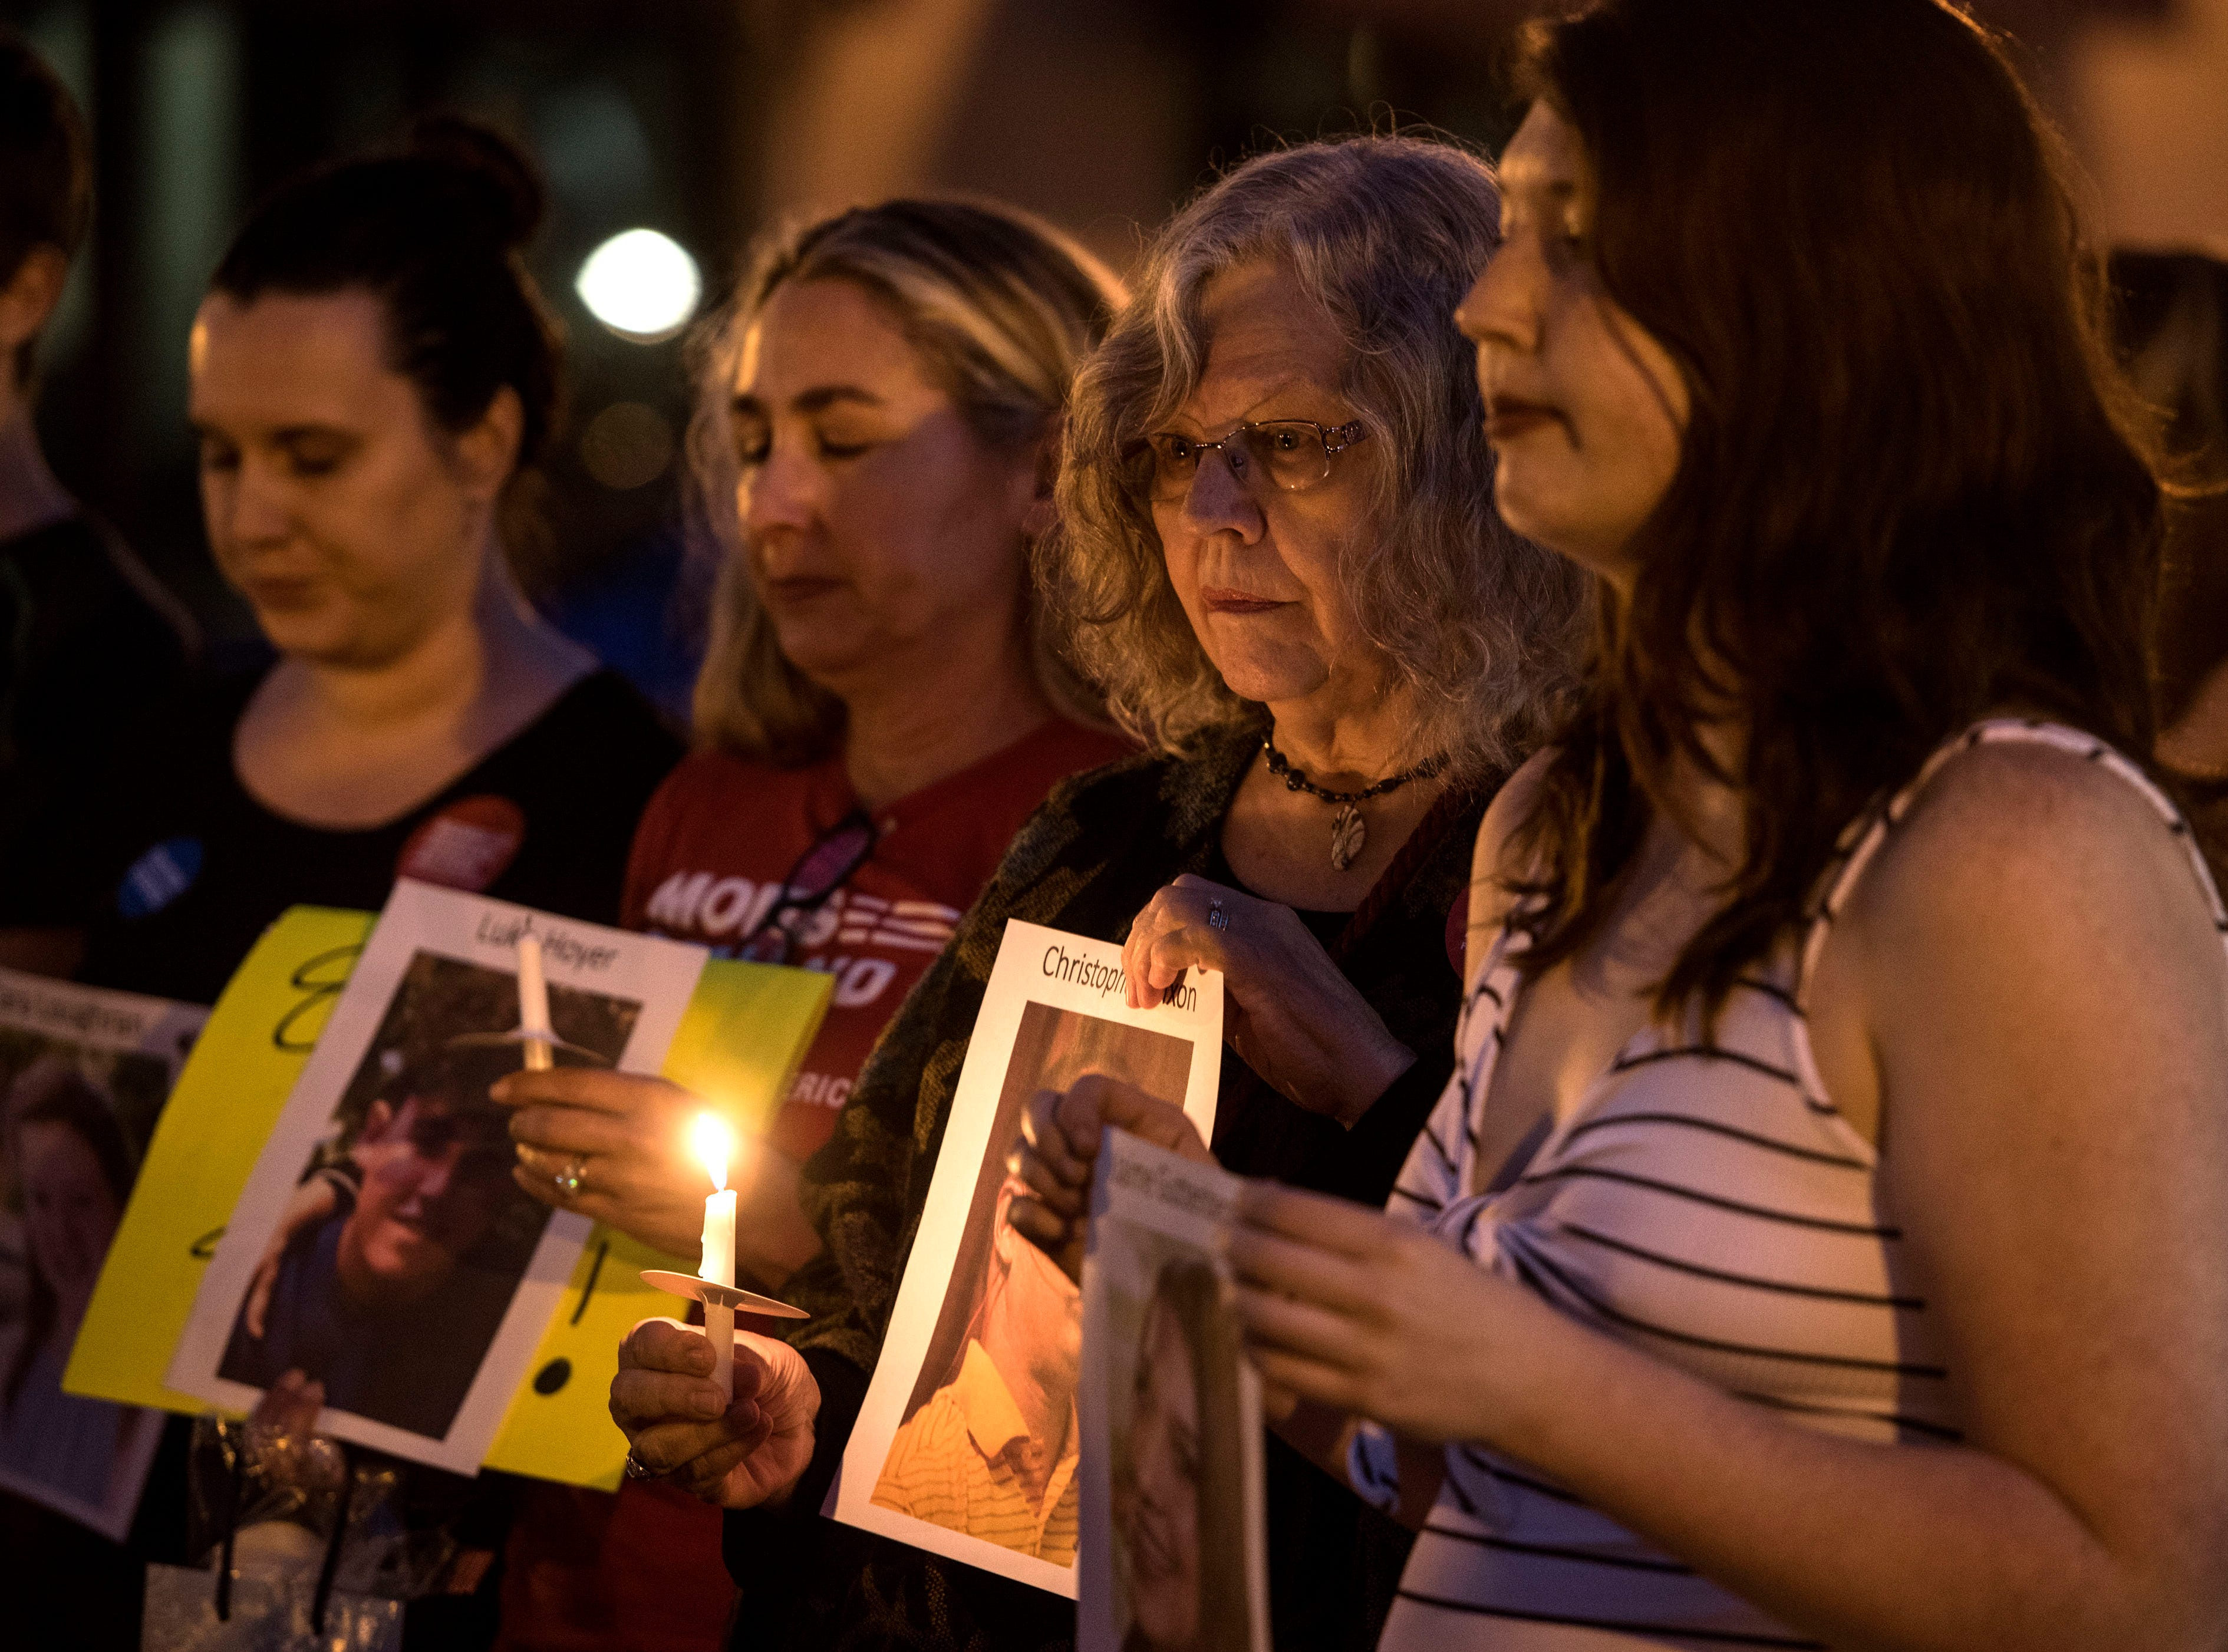 People gather at Garden and Palafox streets Sunday, Feb. 18, 2018, for a  candlelight vigil for Parkland shooting victims. The vigil was hosted by Mom's Demand Action, Indivisible Northwest Florida and Progressives Northwest Florida.